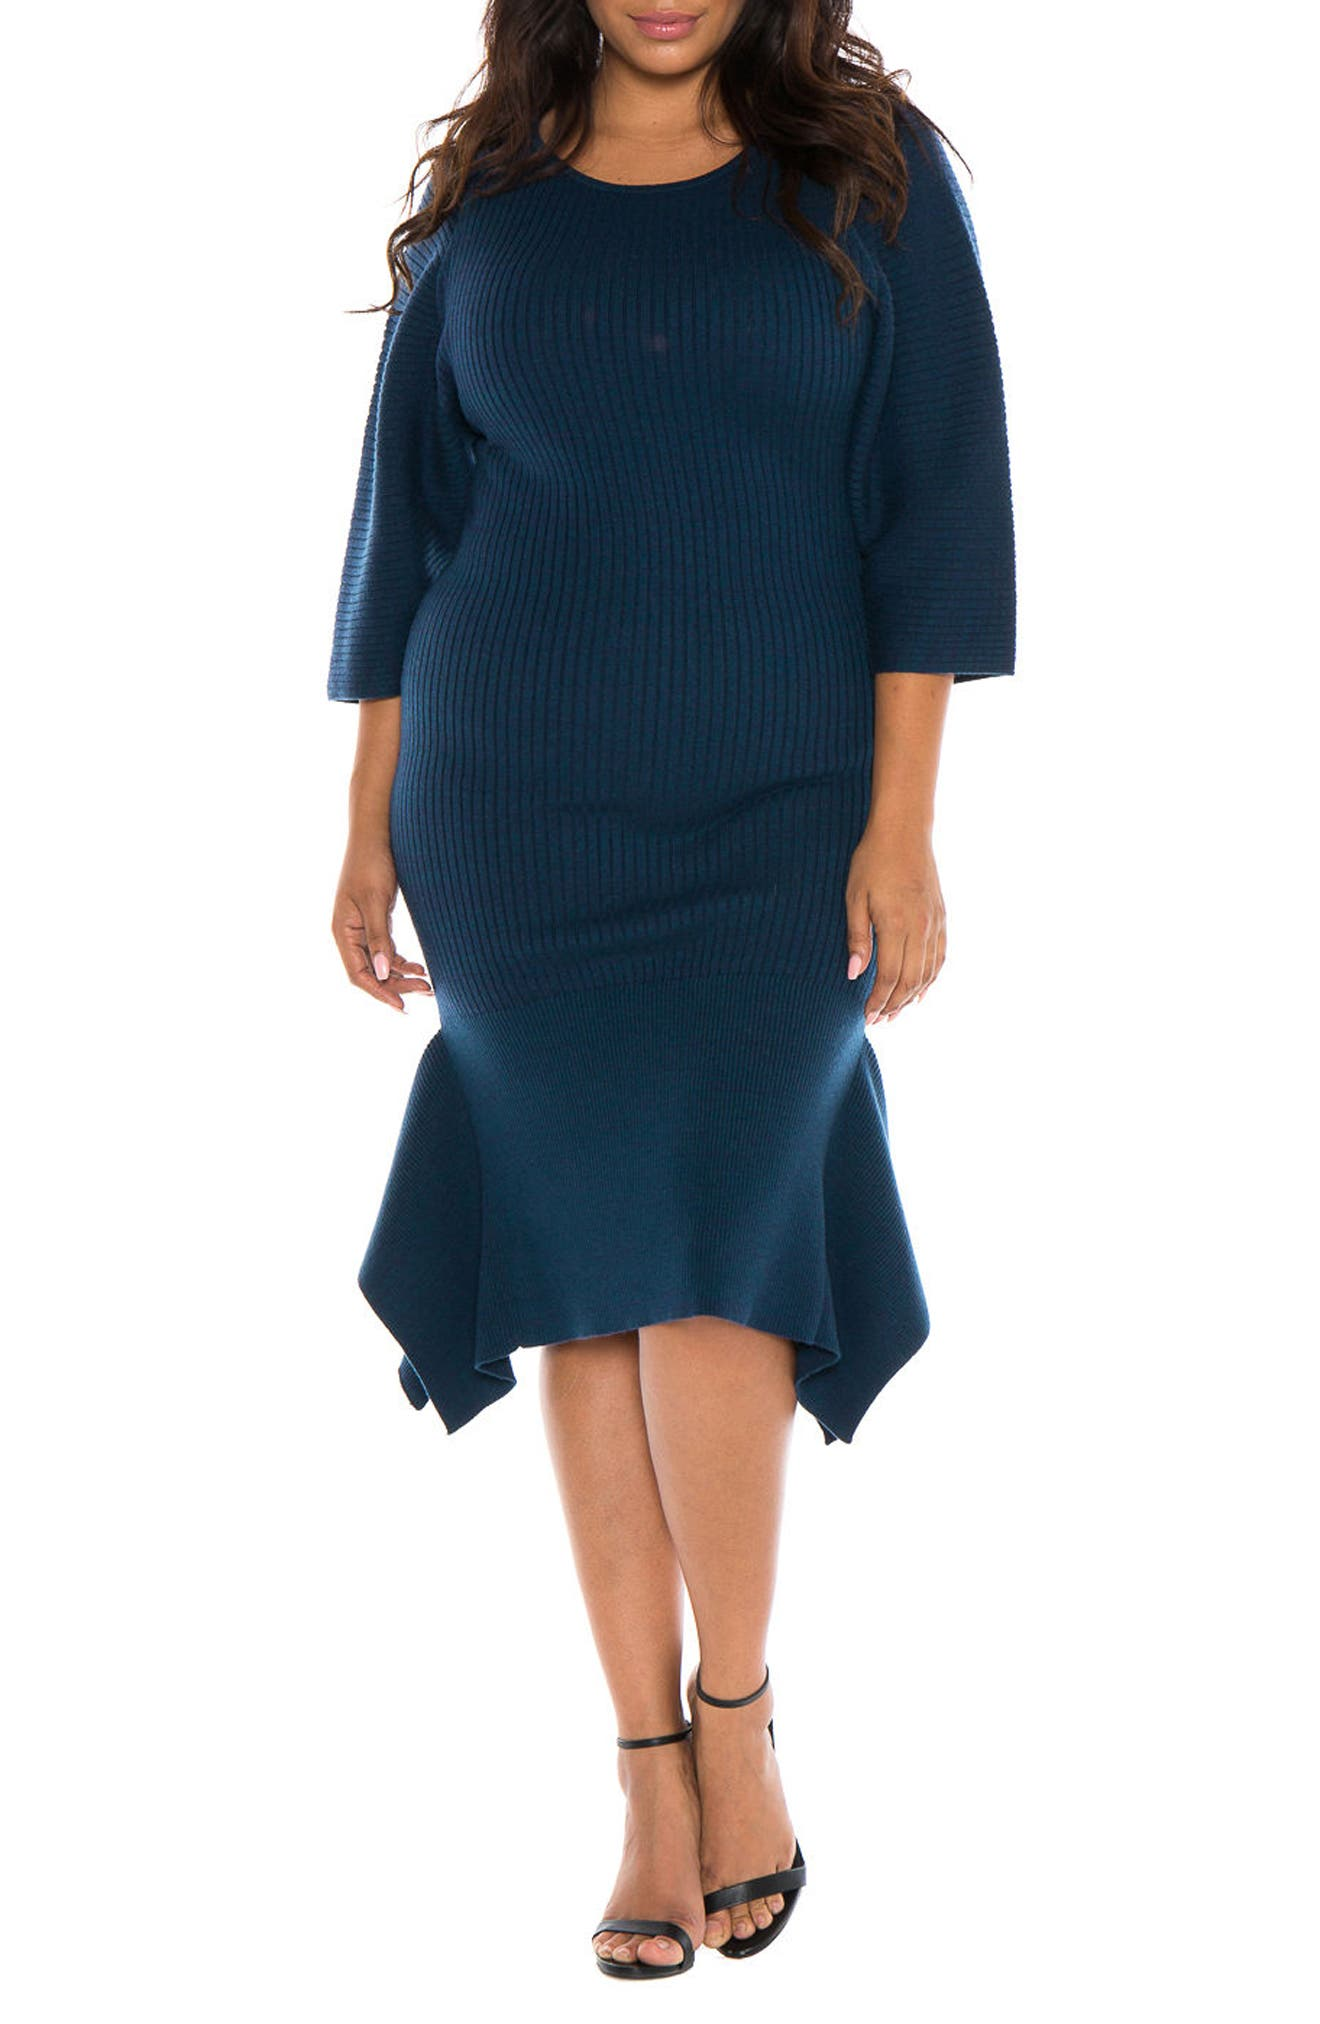 Main Image - SLINK Jeans Handkerchief Hem Sweater Dress (Plus Size)